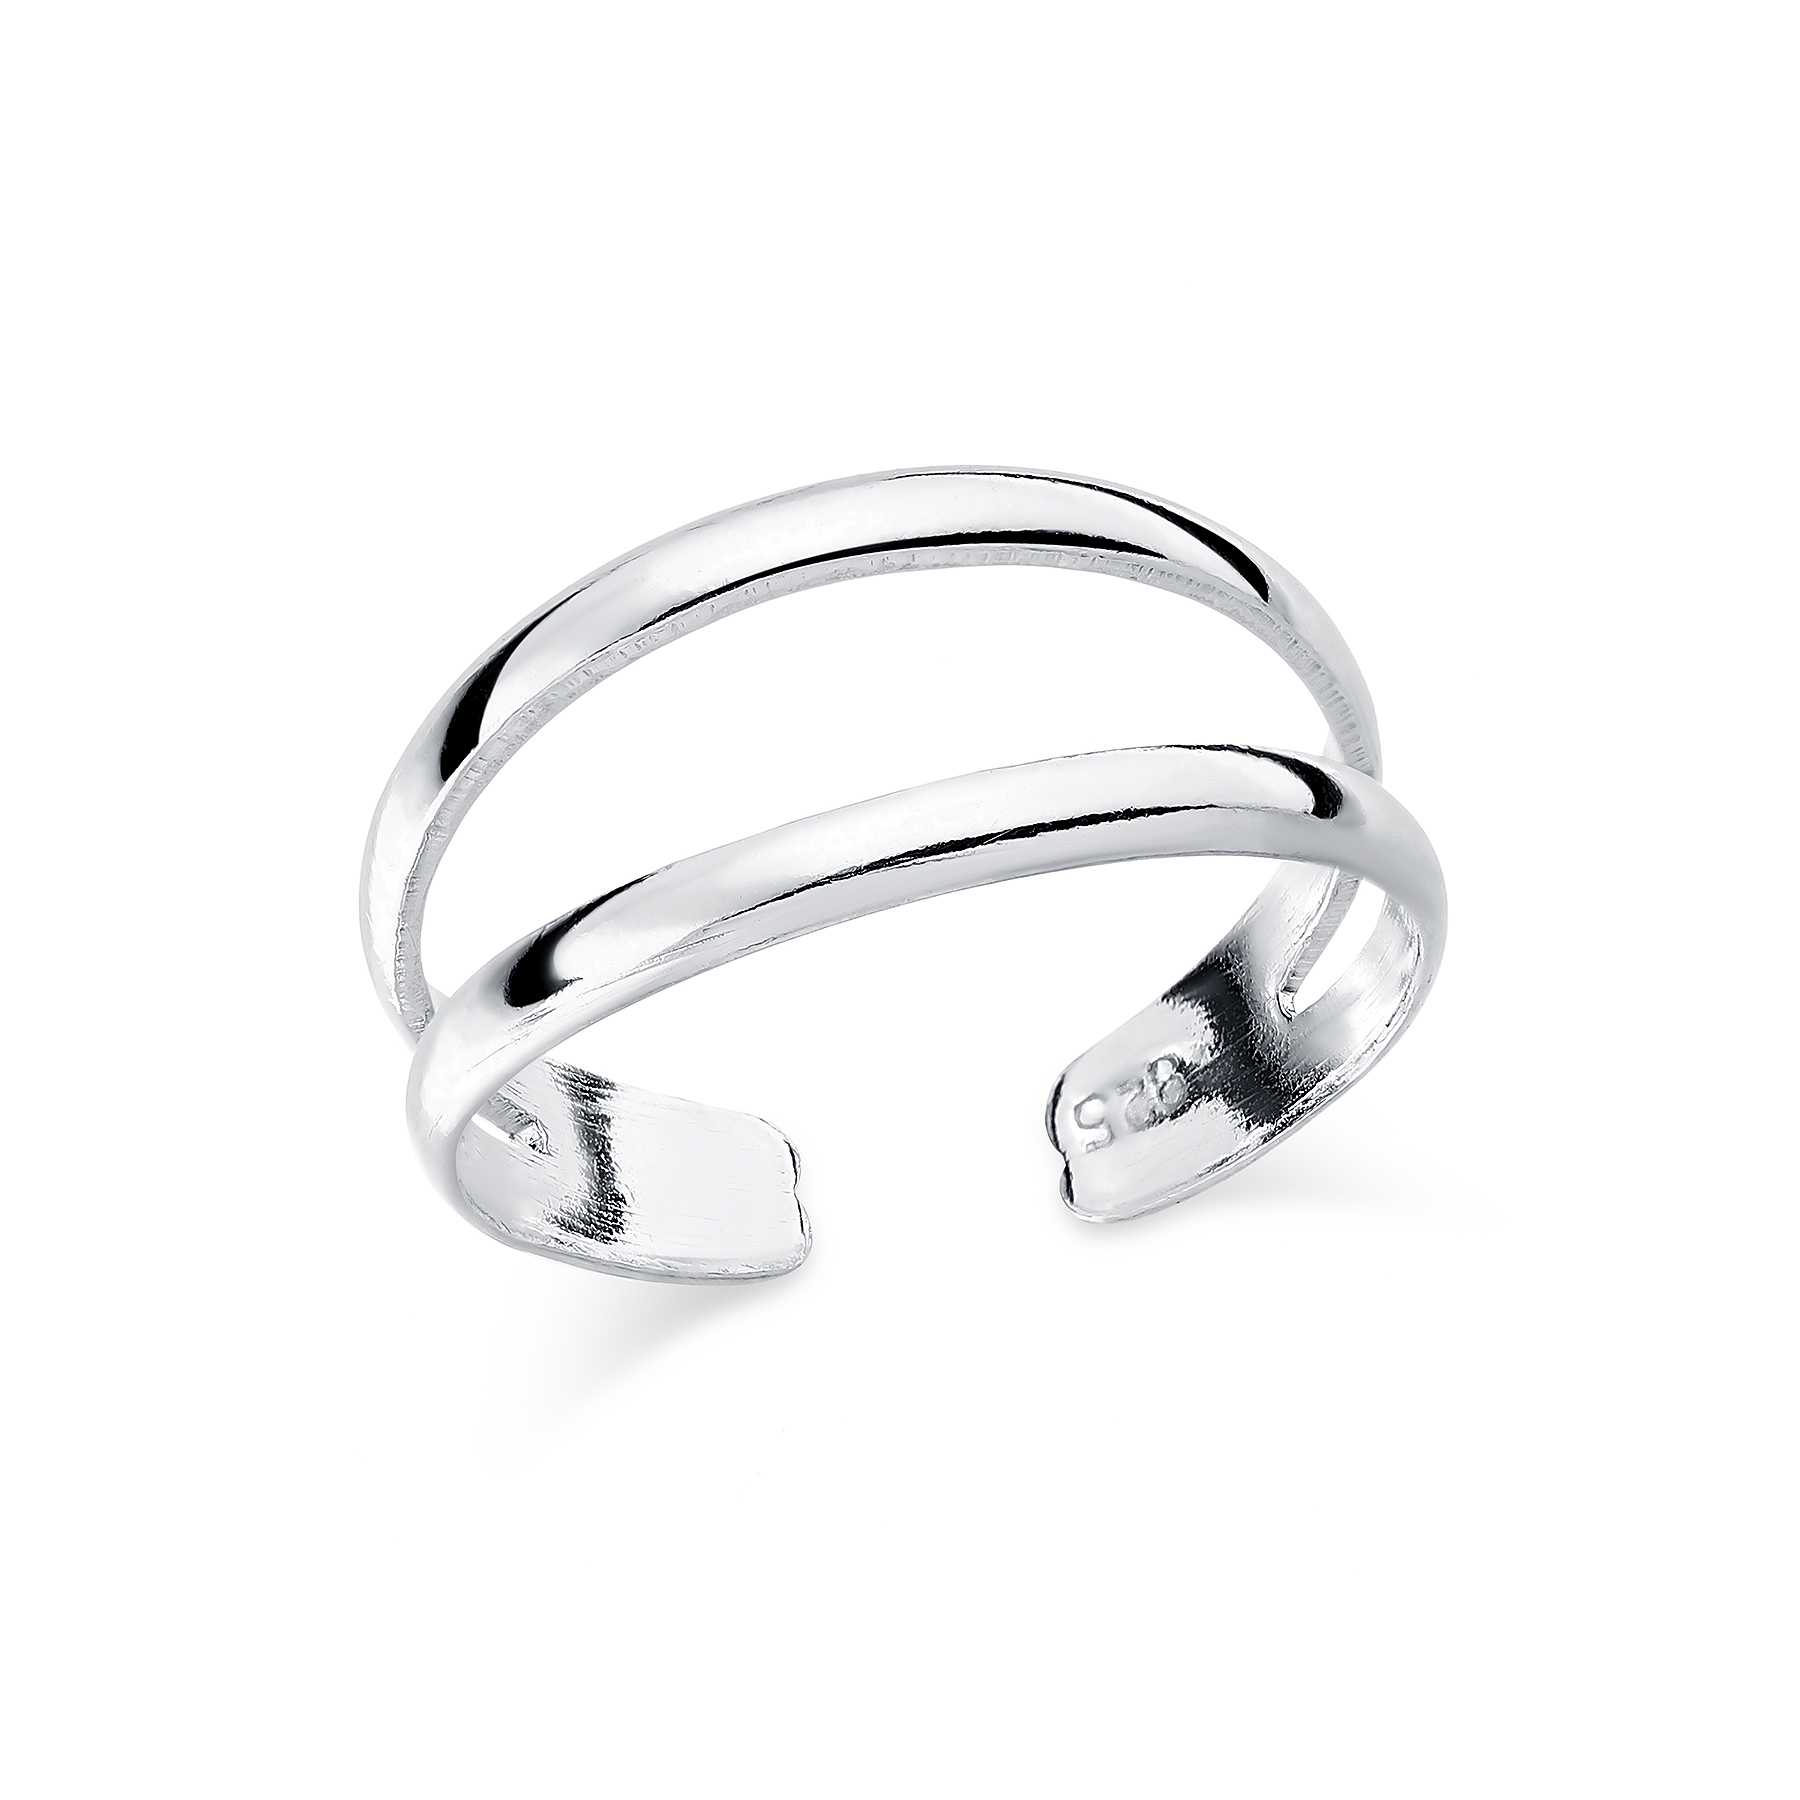 792-361 - 925 Sterling Silver Toe Ring